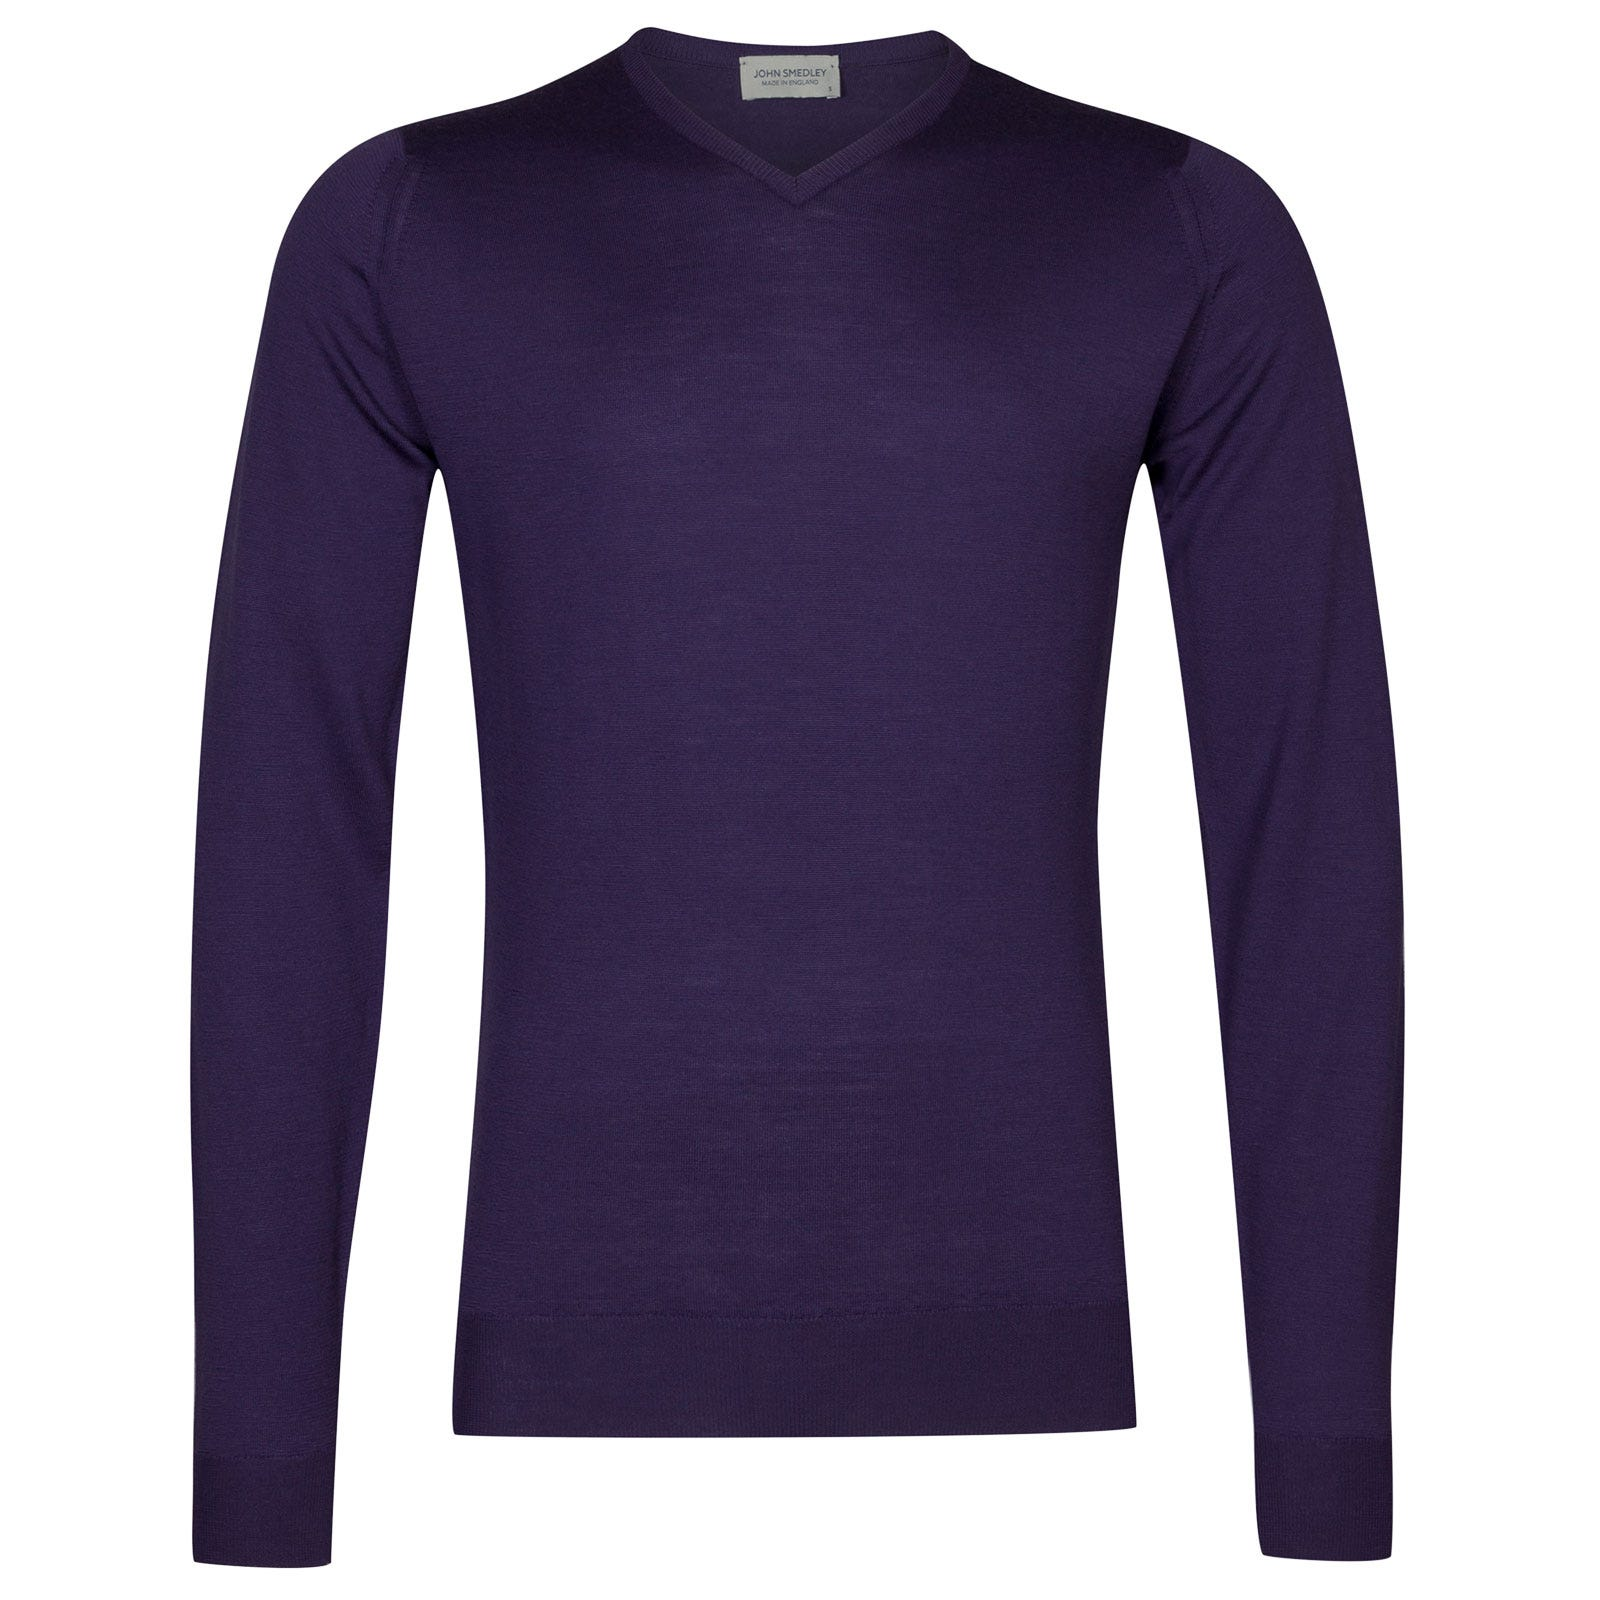 John Smedley shipton Merino Wool Pullover in Elderberry Purple-M